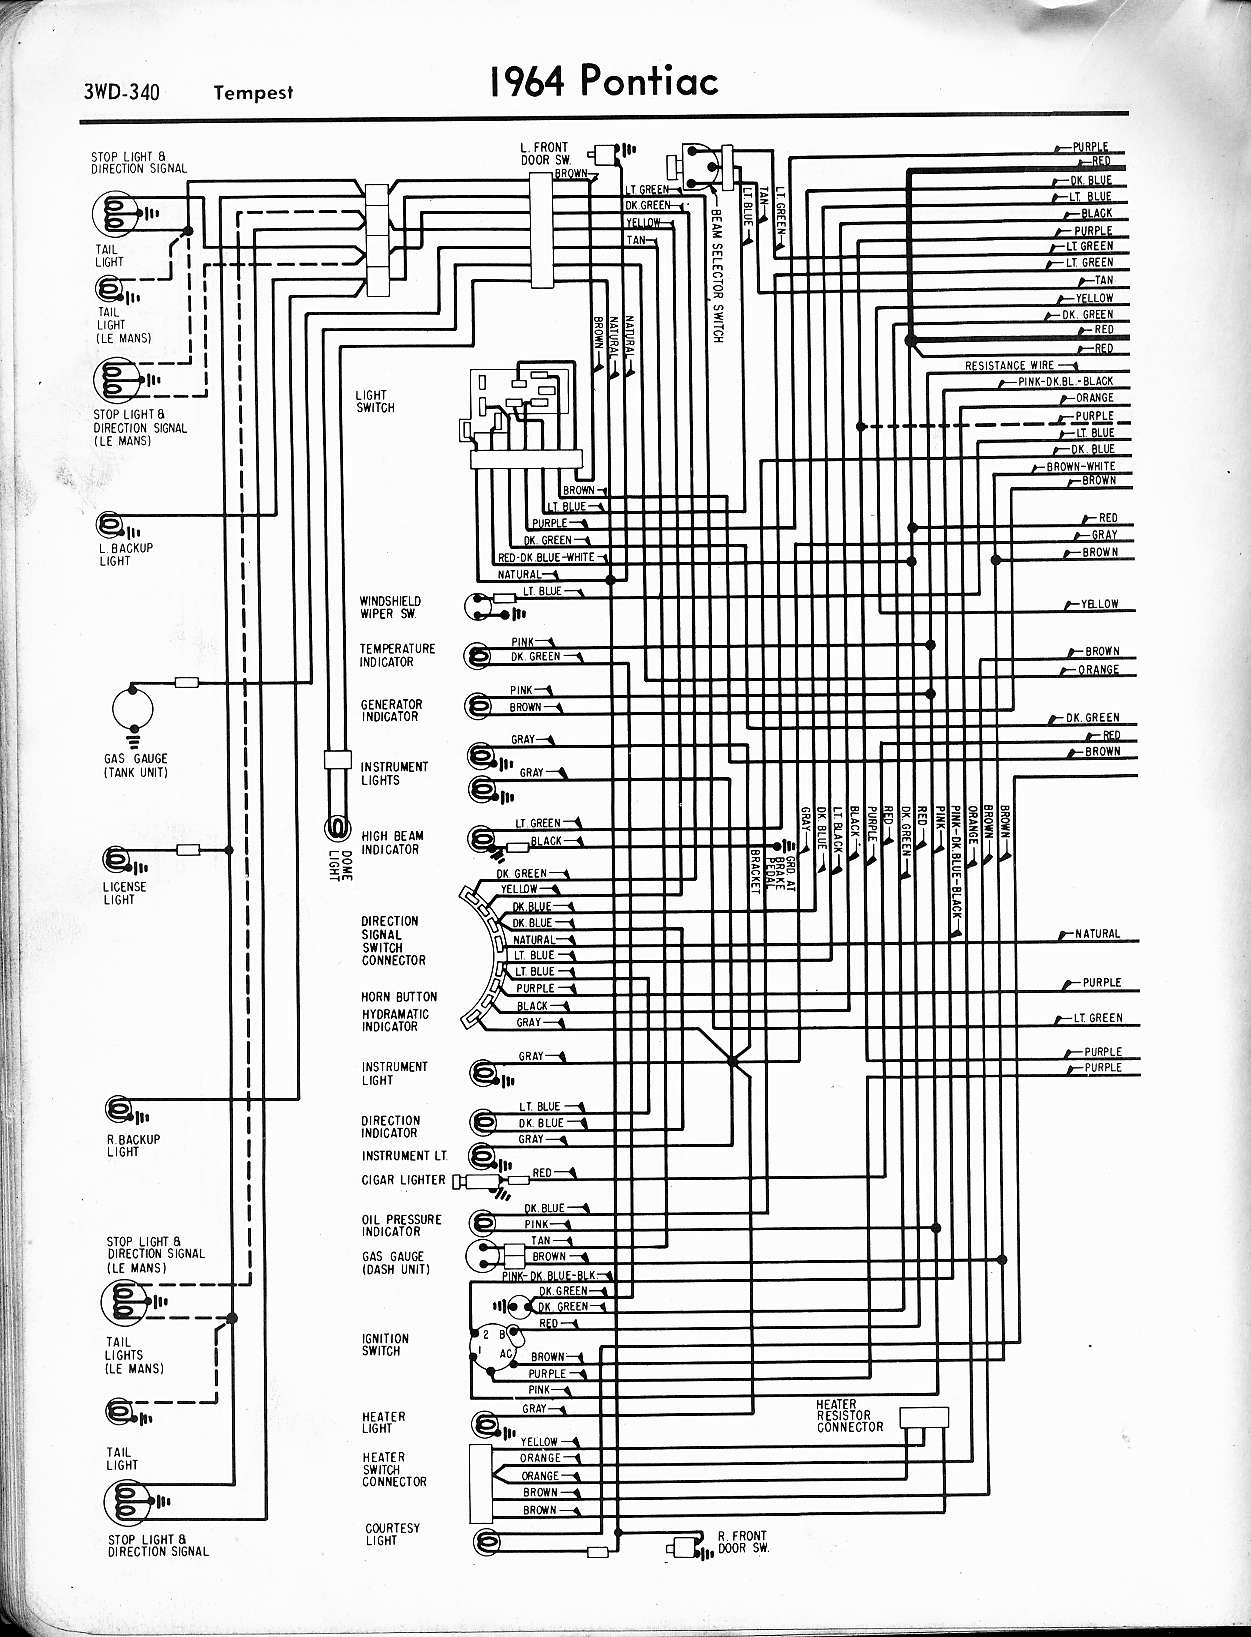 1964 pontiac gto wiring diagram wire center u2022 rh totalnutritiontampa com 1964 pontiac gto wiring diagram 1964 pontiac parisienne wiring diagram